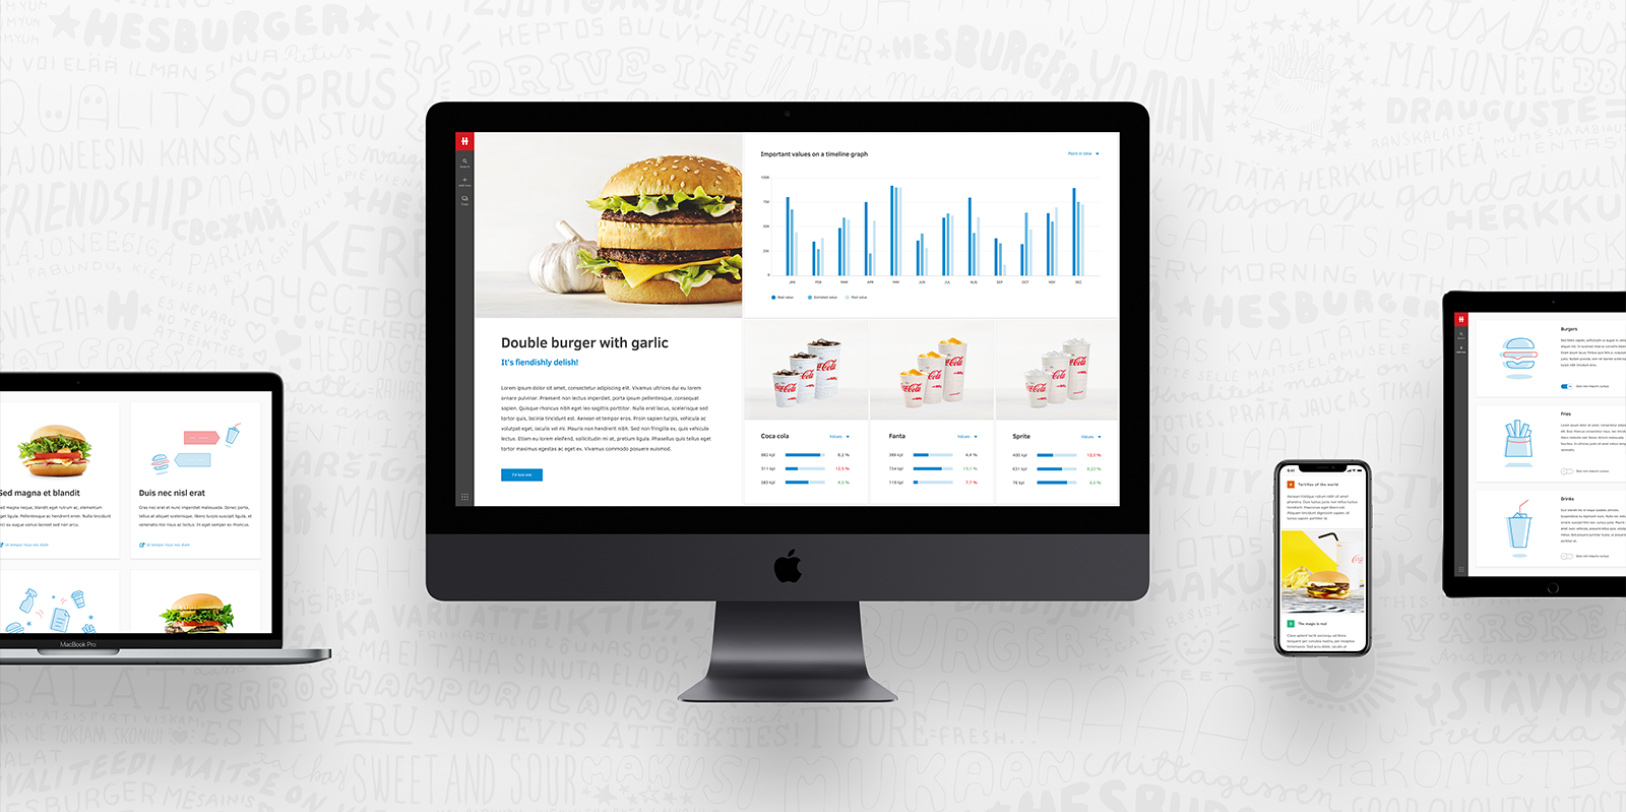 Hesburger user interfaces on various devices: a laptop, desktop, smartphone and iPad.